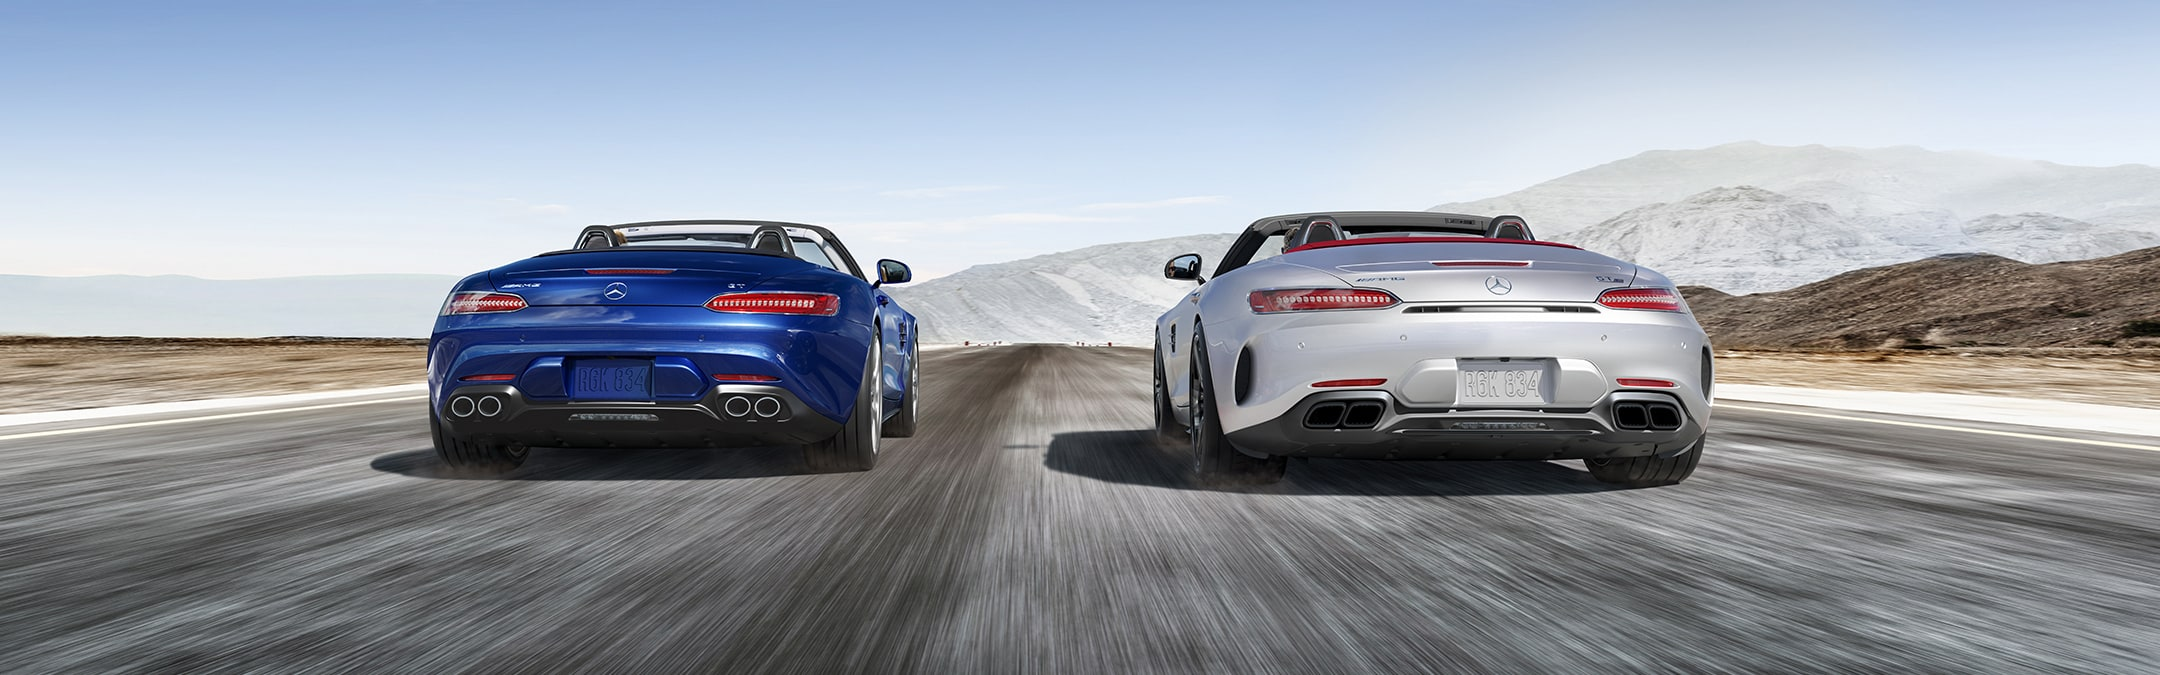 The Amg Gt Roadster Mercedes Benz Usa